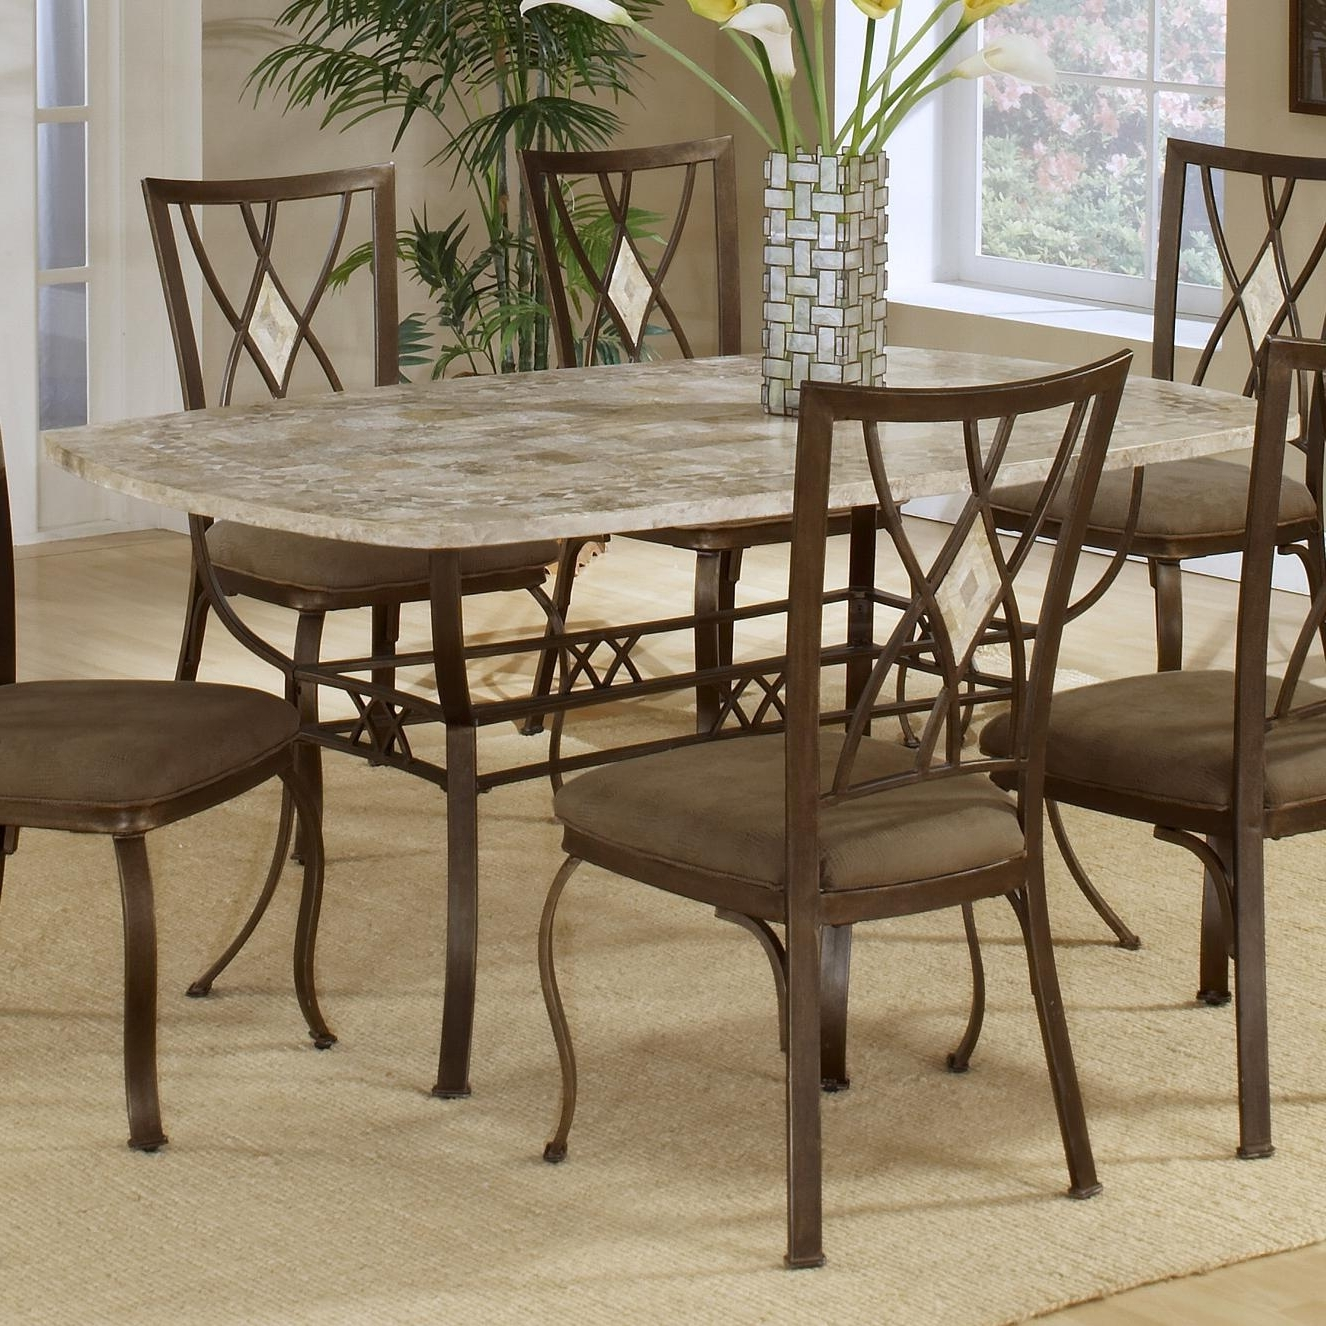 2018 Stone Dining Tables Pertaining To Brookside Rectangle Dining Table With Fossil Stone Top (View 3 of 25)